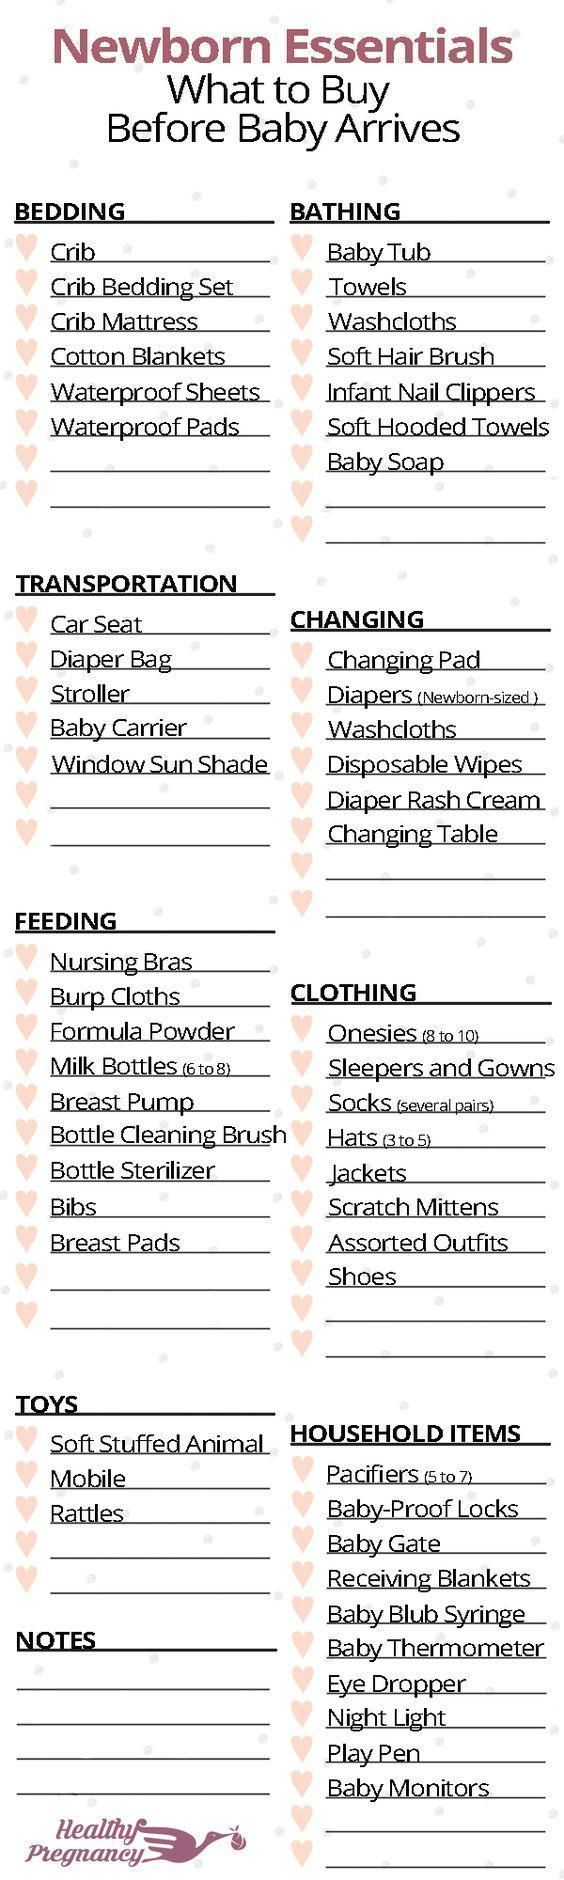 New parents are inundated with lists about what to buy as they prepare for baby. Use this guide to plan your budget and get all you need for your newborn. #babies #necessities